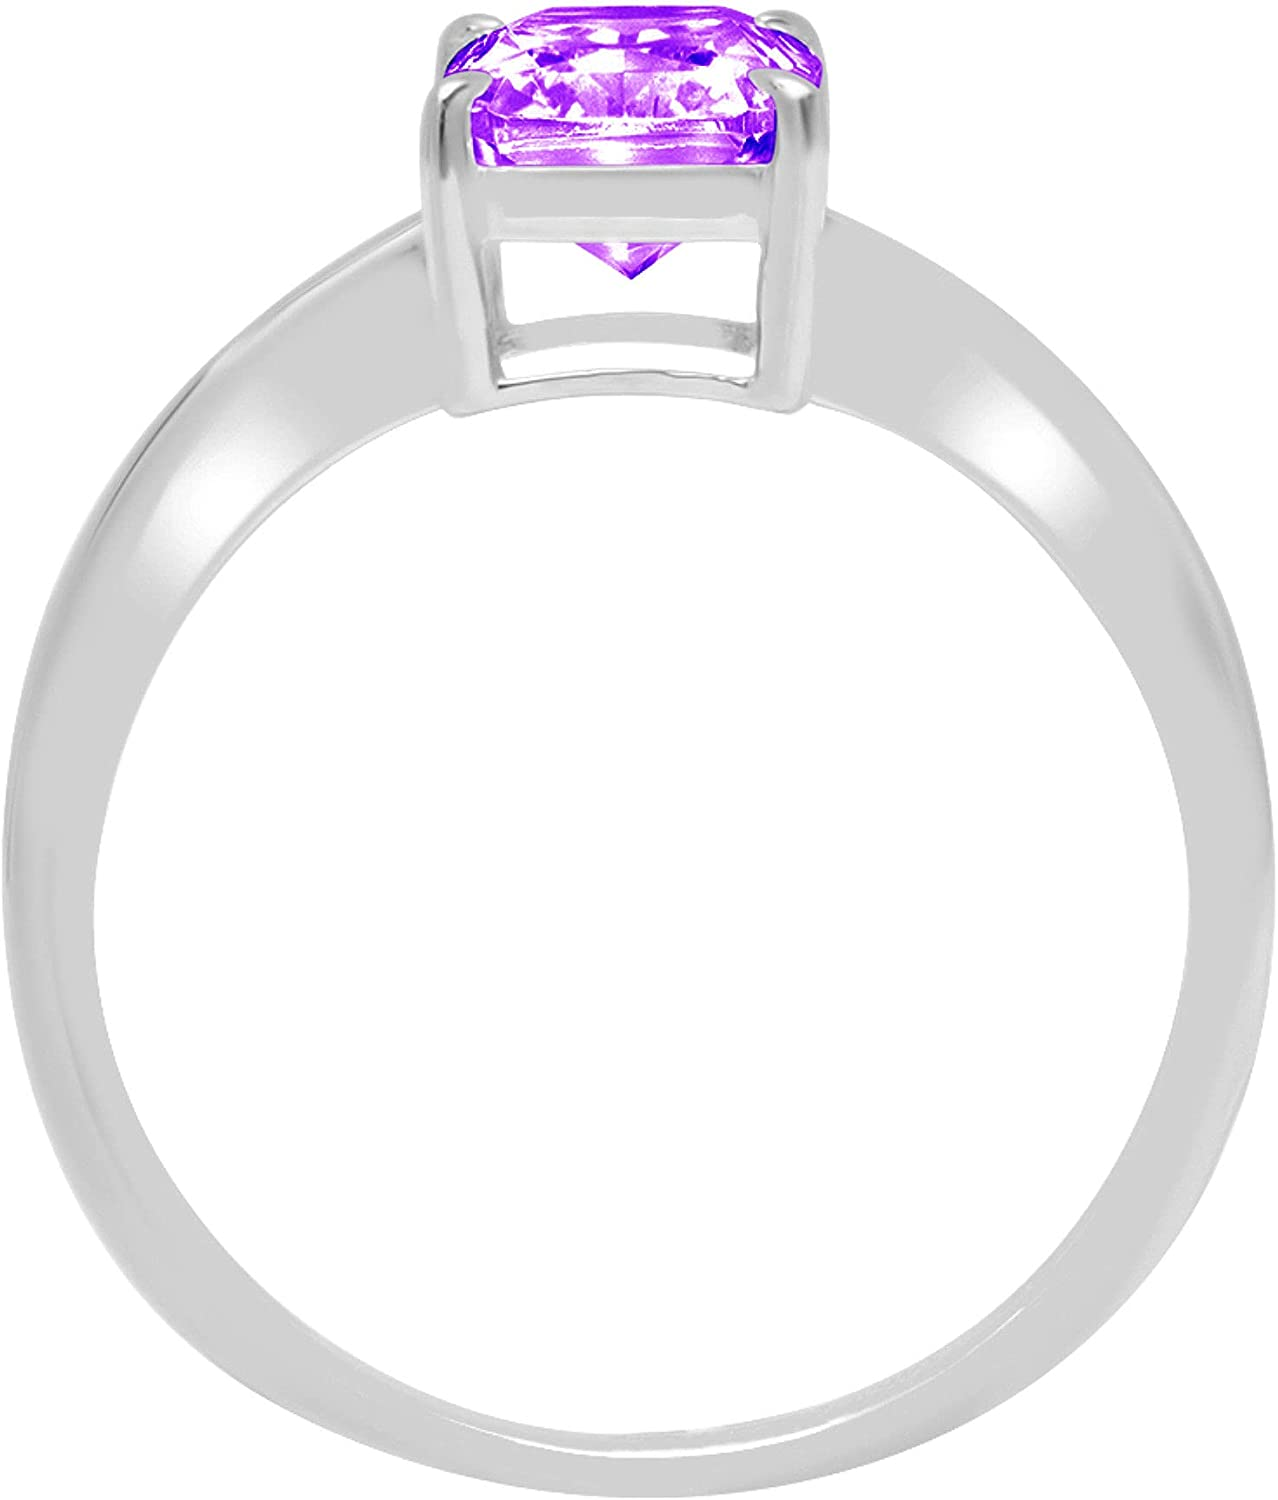 0.95ct Brilliant Radiant Cut Solitaire Natural Purple Amethyst Ideal VVS1 4-Prong Classic Designer Statement Ring Solid Real 14k White Gold for Women